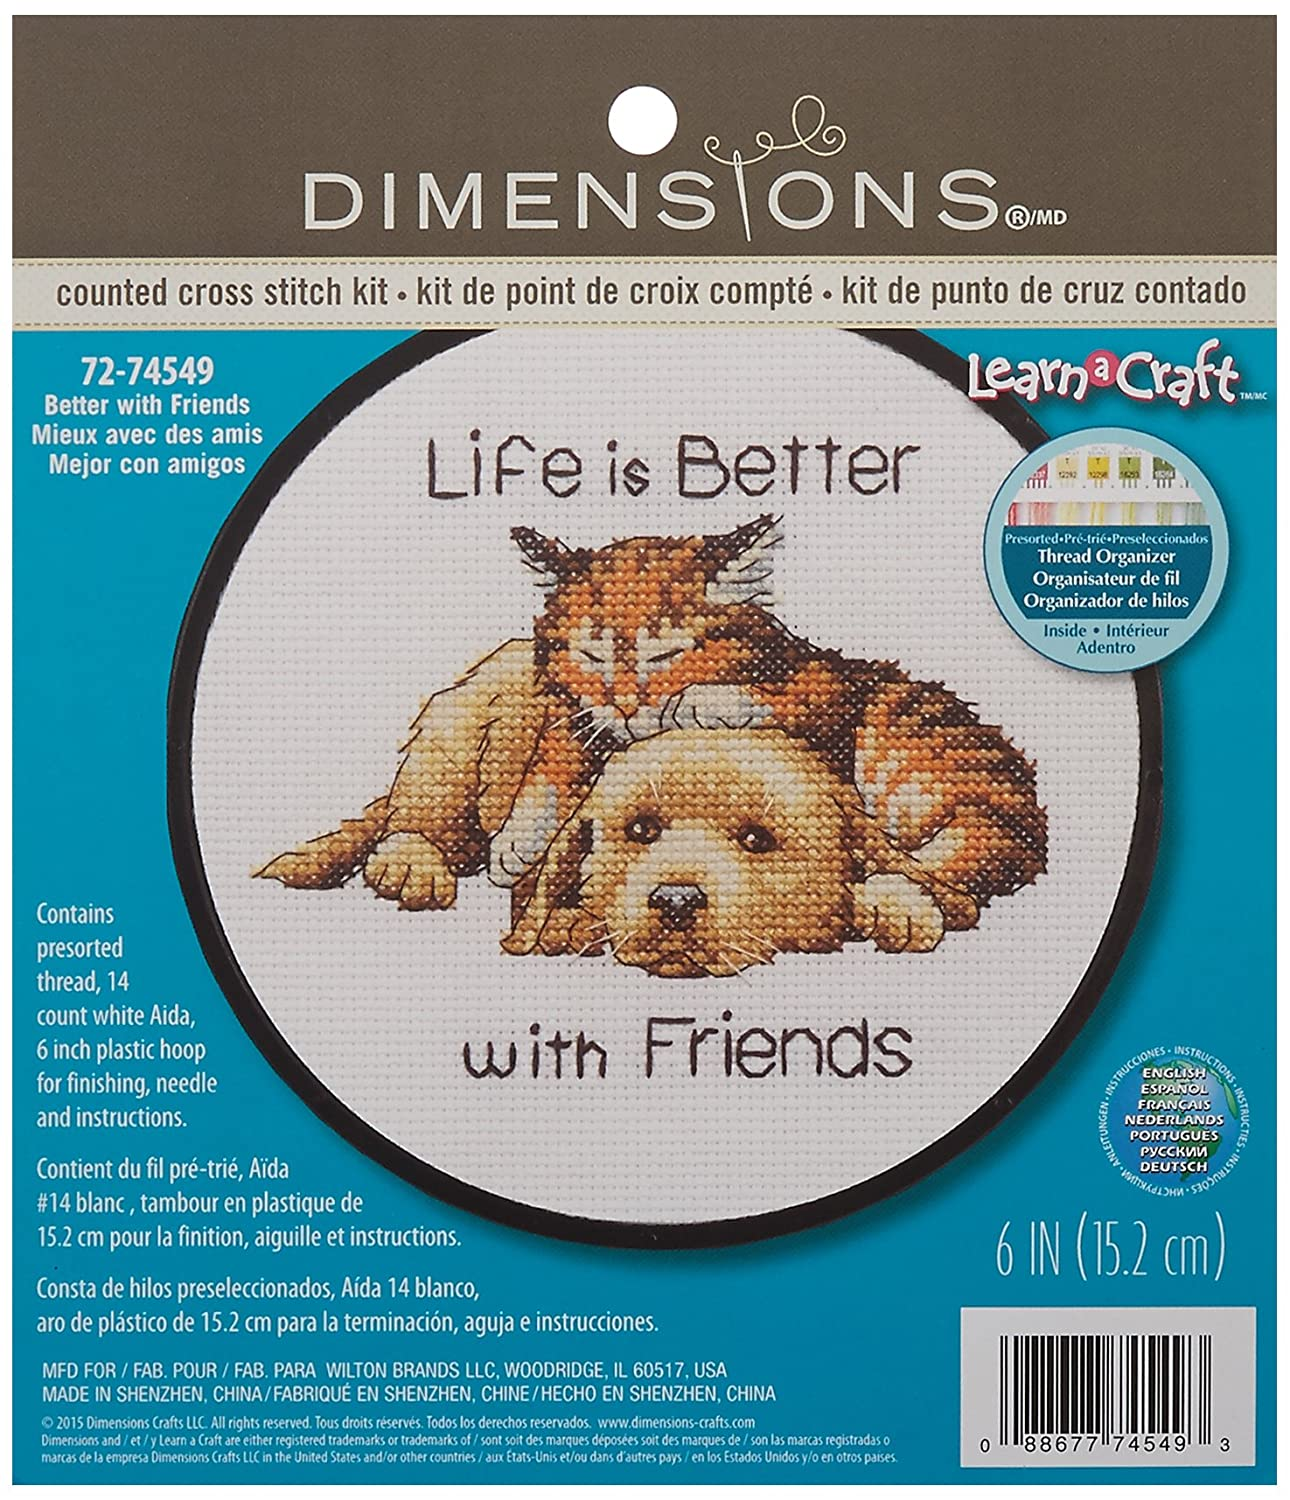 Dimensions Better with Friends Counted Cross Stitch Kit, 72-74549 IDEAL DESIGN ENTERPRISES CO. LTD